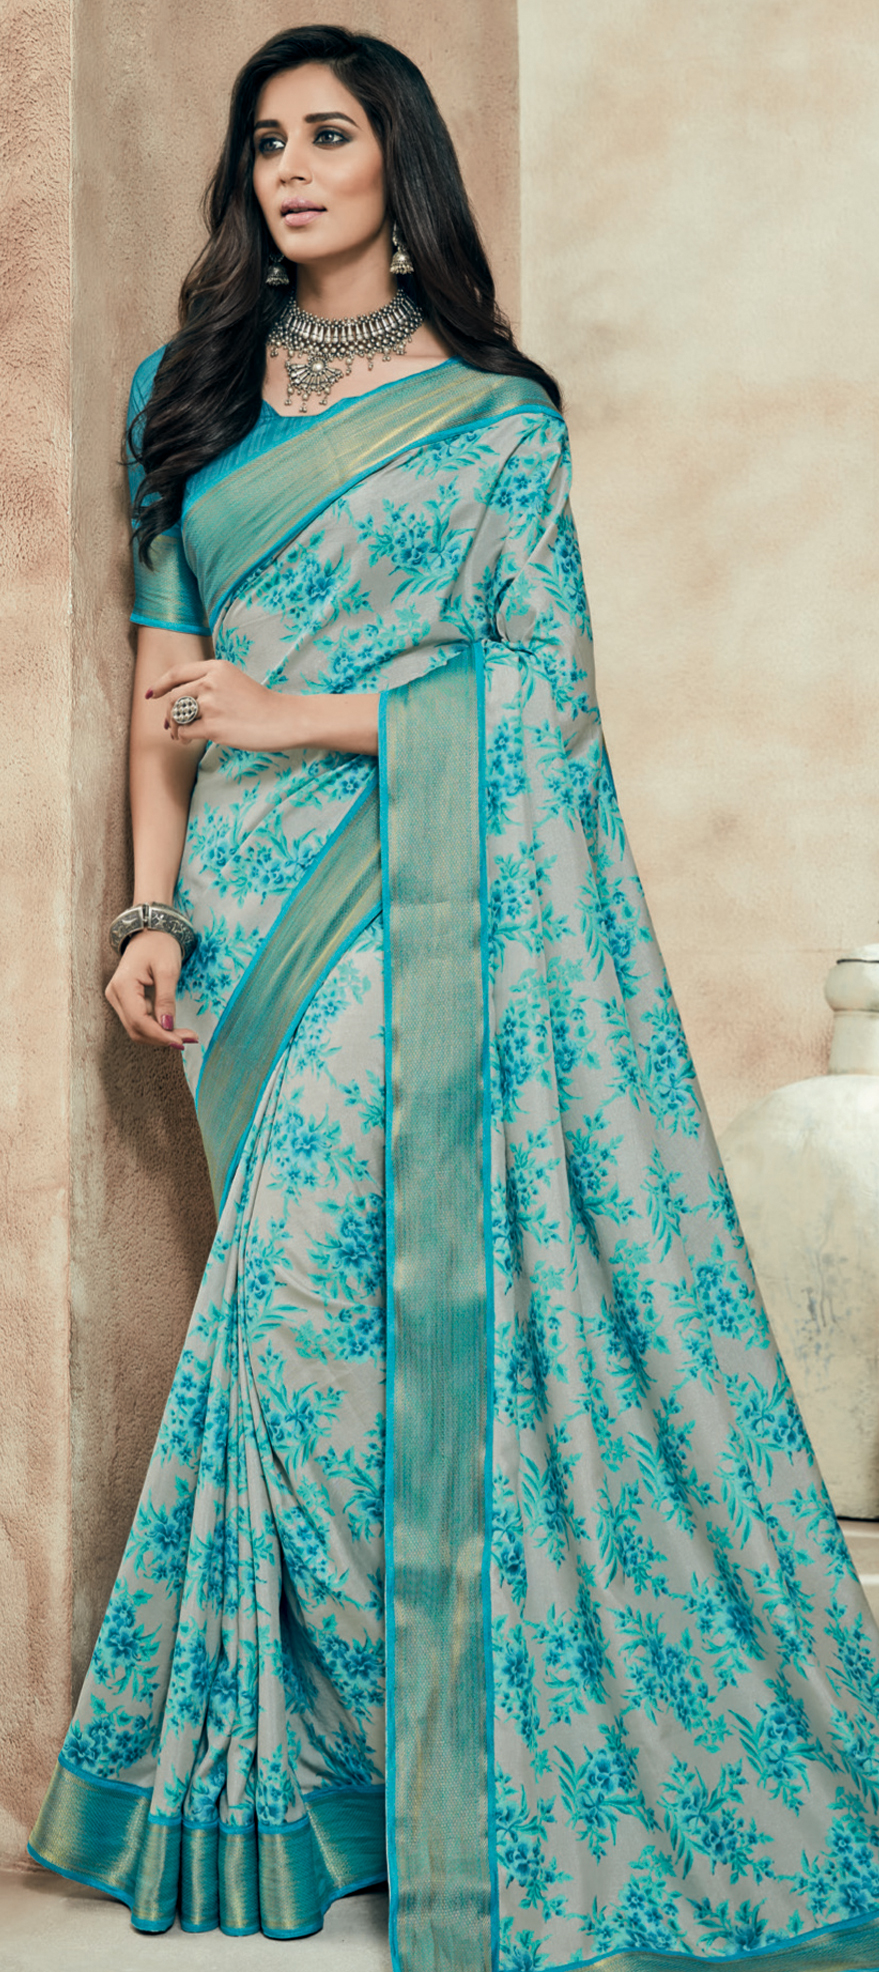 712030: Beige and Brown, Green color family Printed Sarees, Silk ...